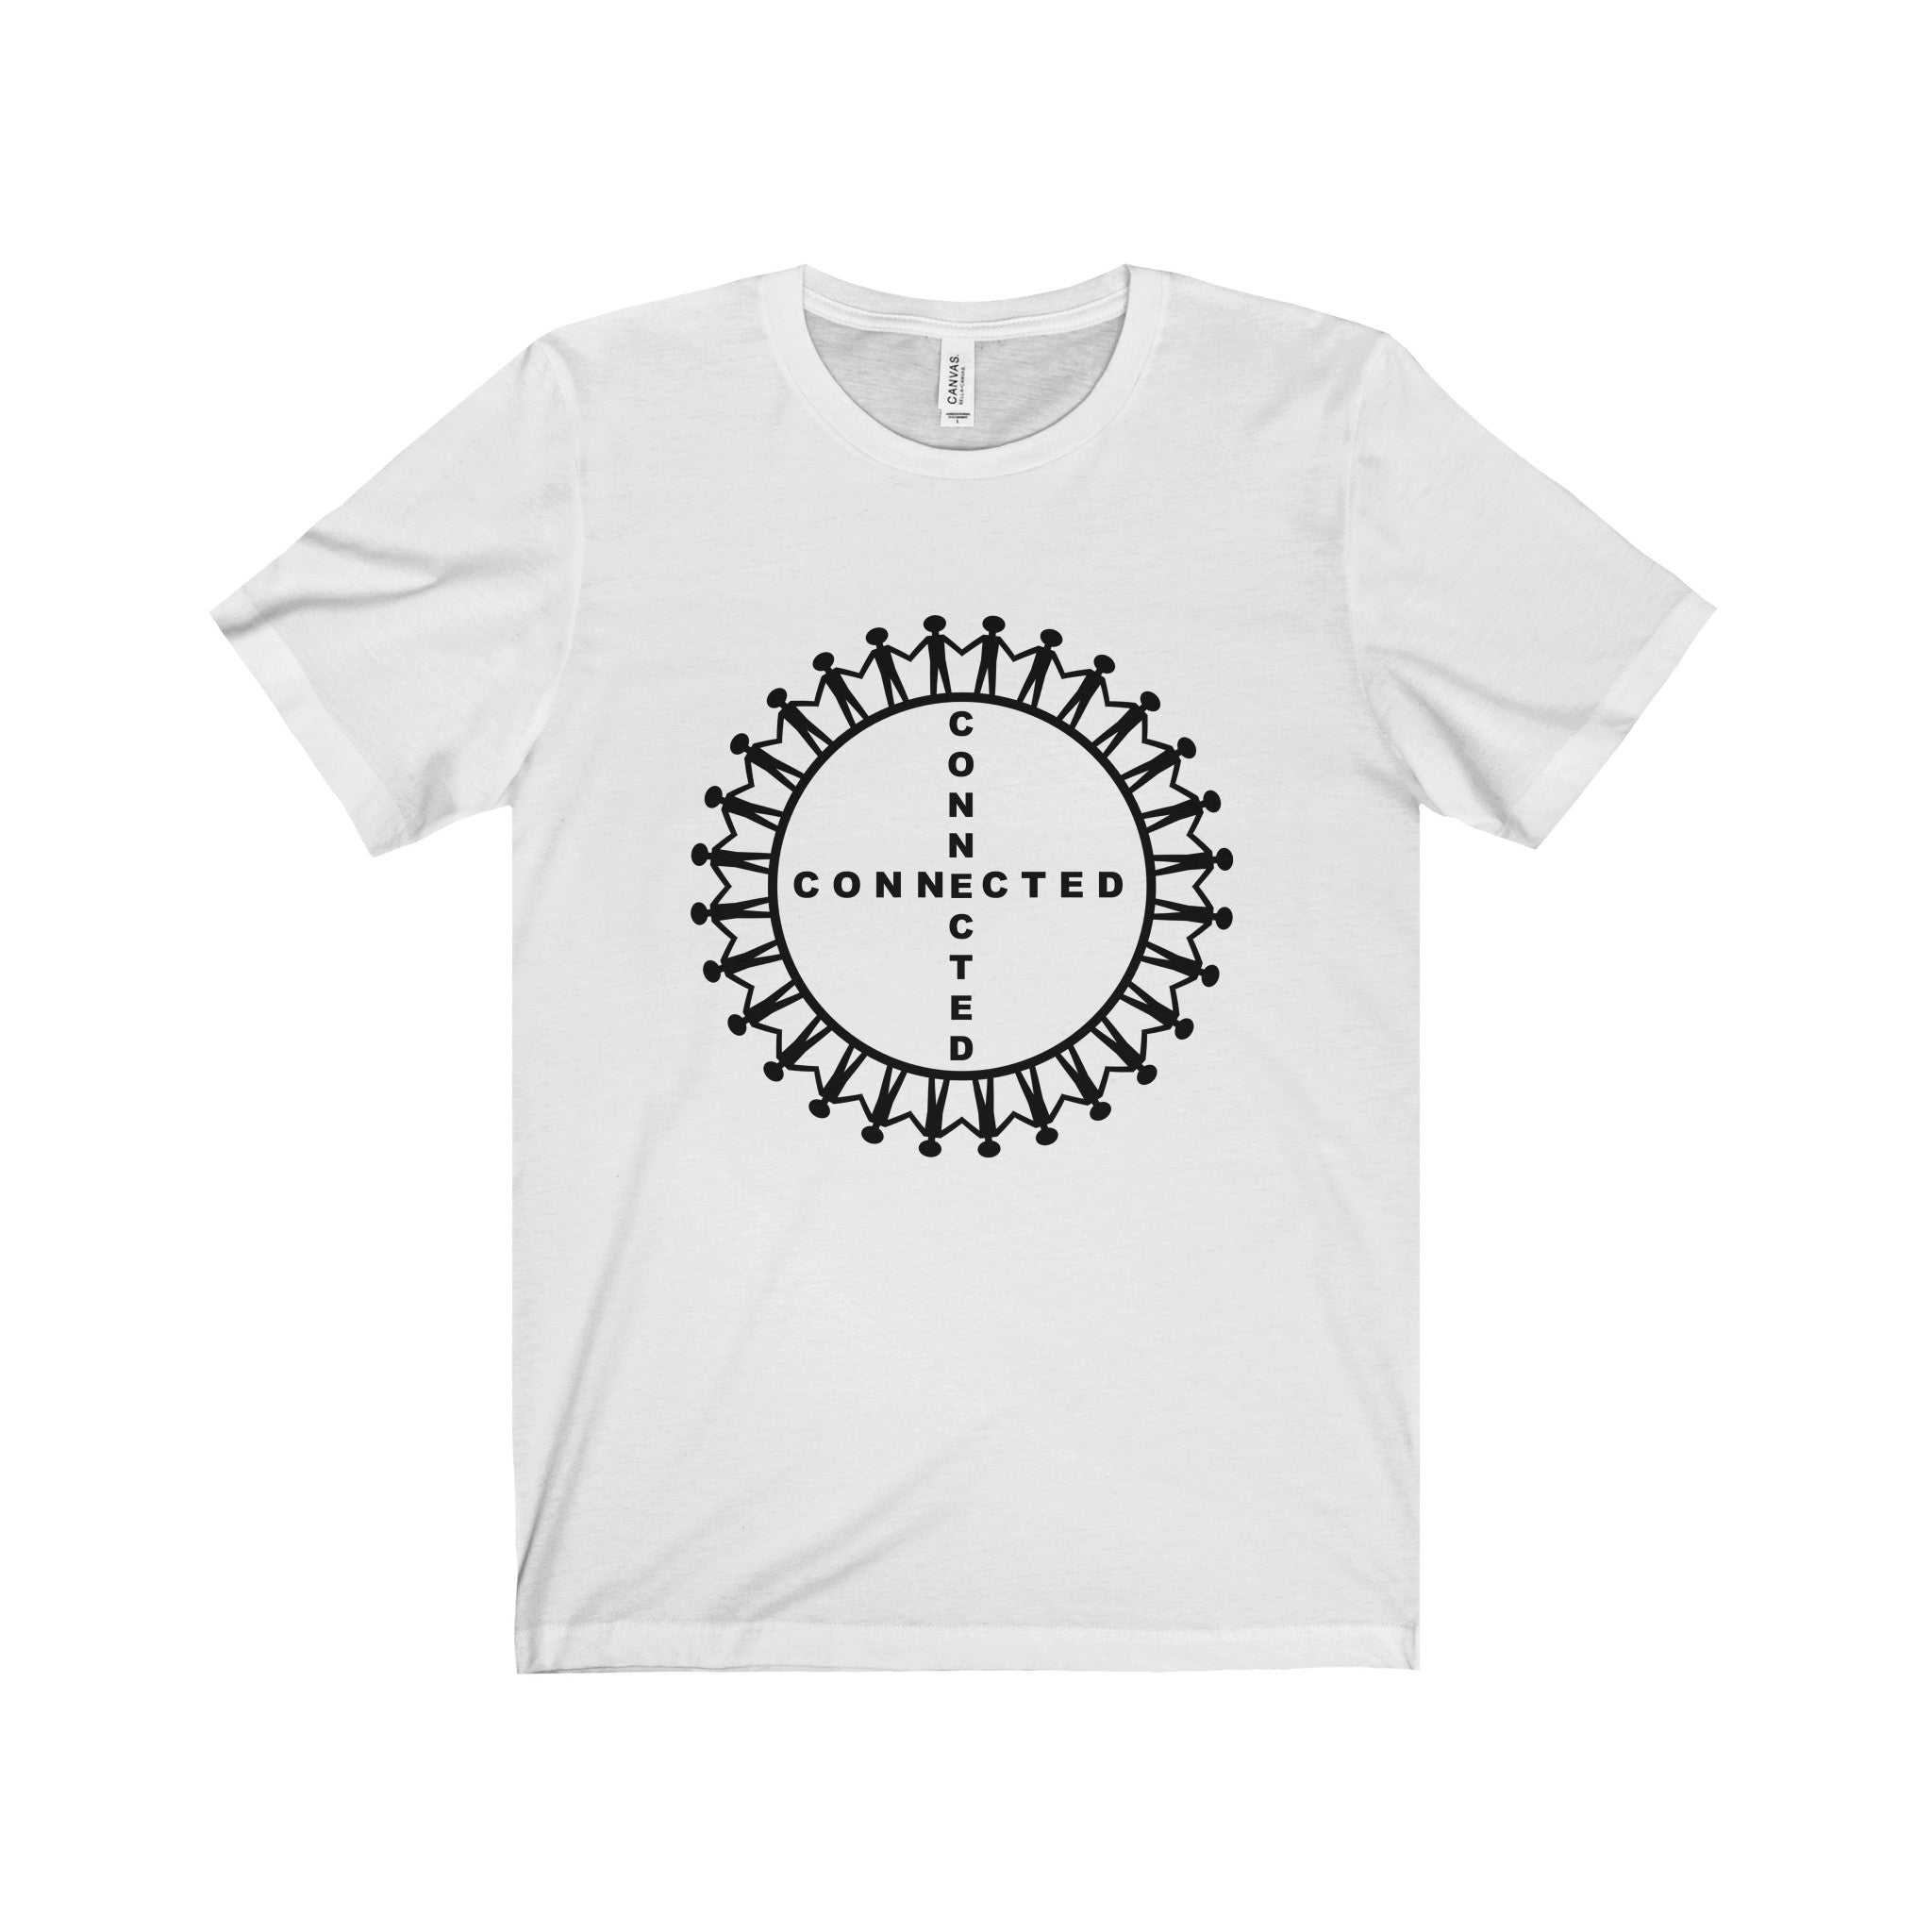 Connected Black Letter Tee (5 colors available)